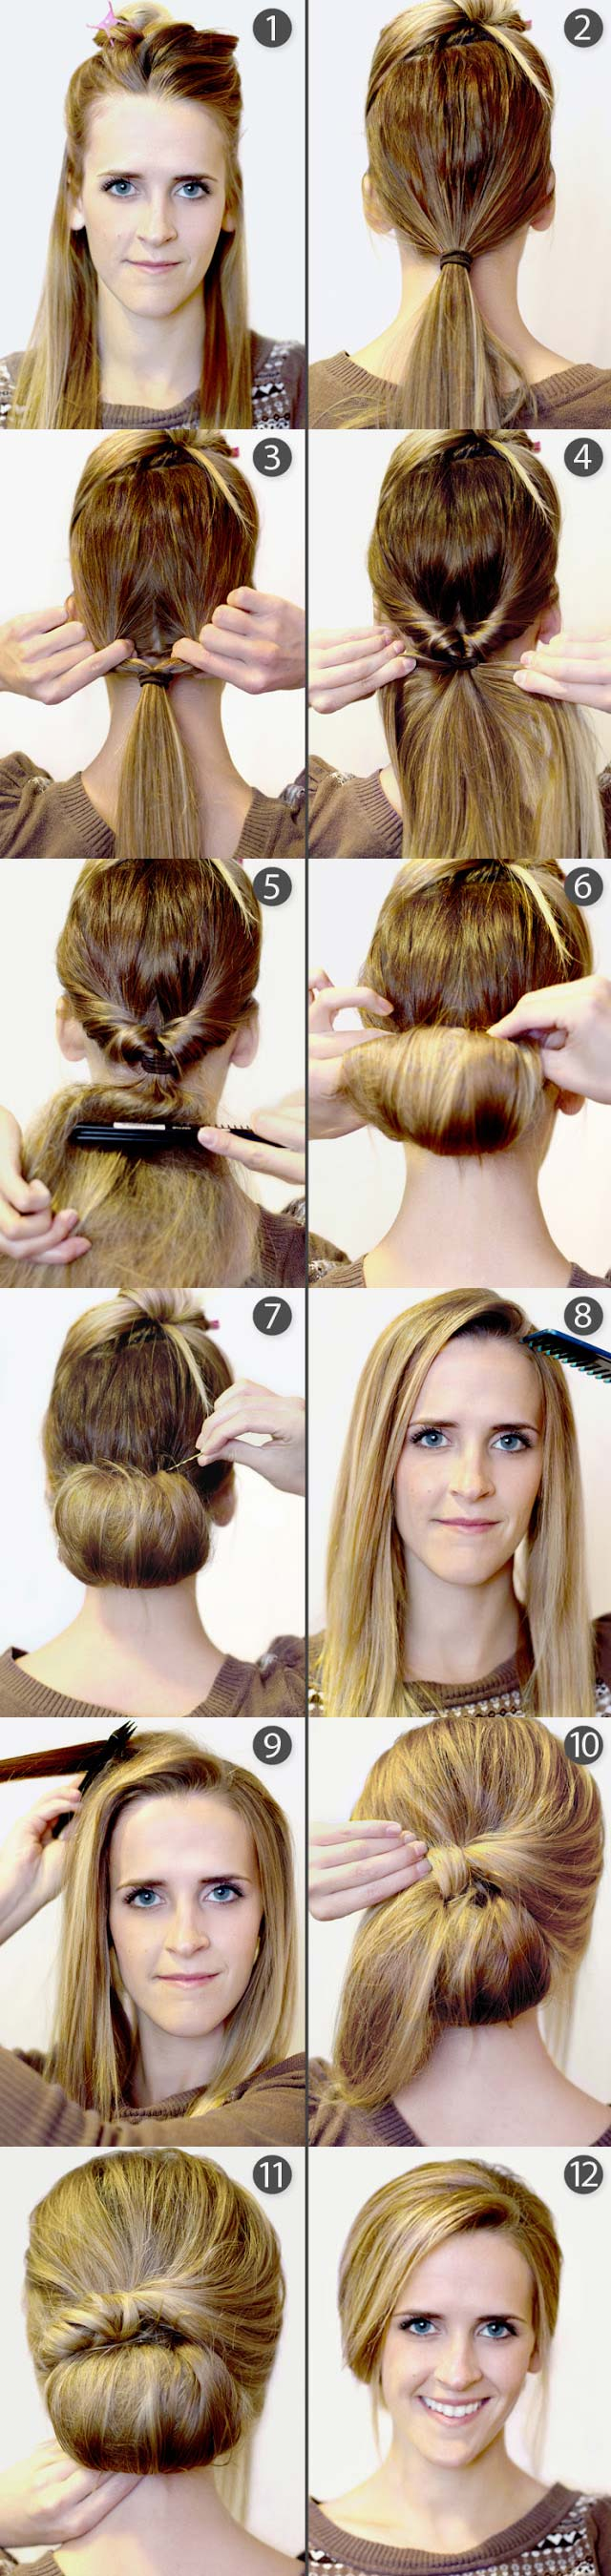 easy hairstyles you can braids to do on yourself DIY  Your Step by Step for the Best Cute Hairstyles   Fashion Diva